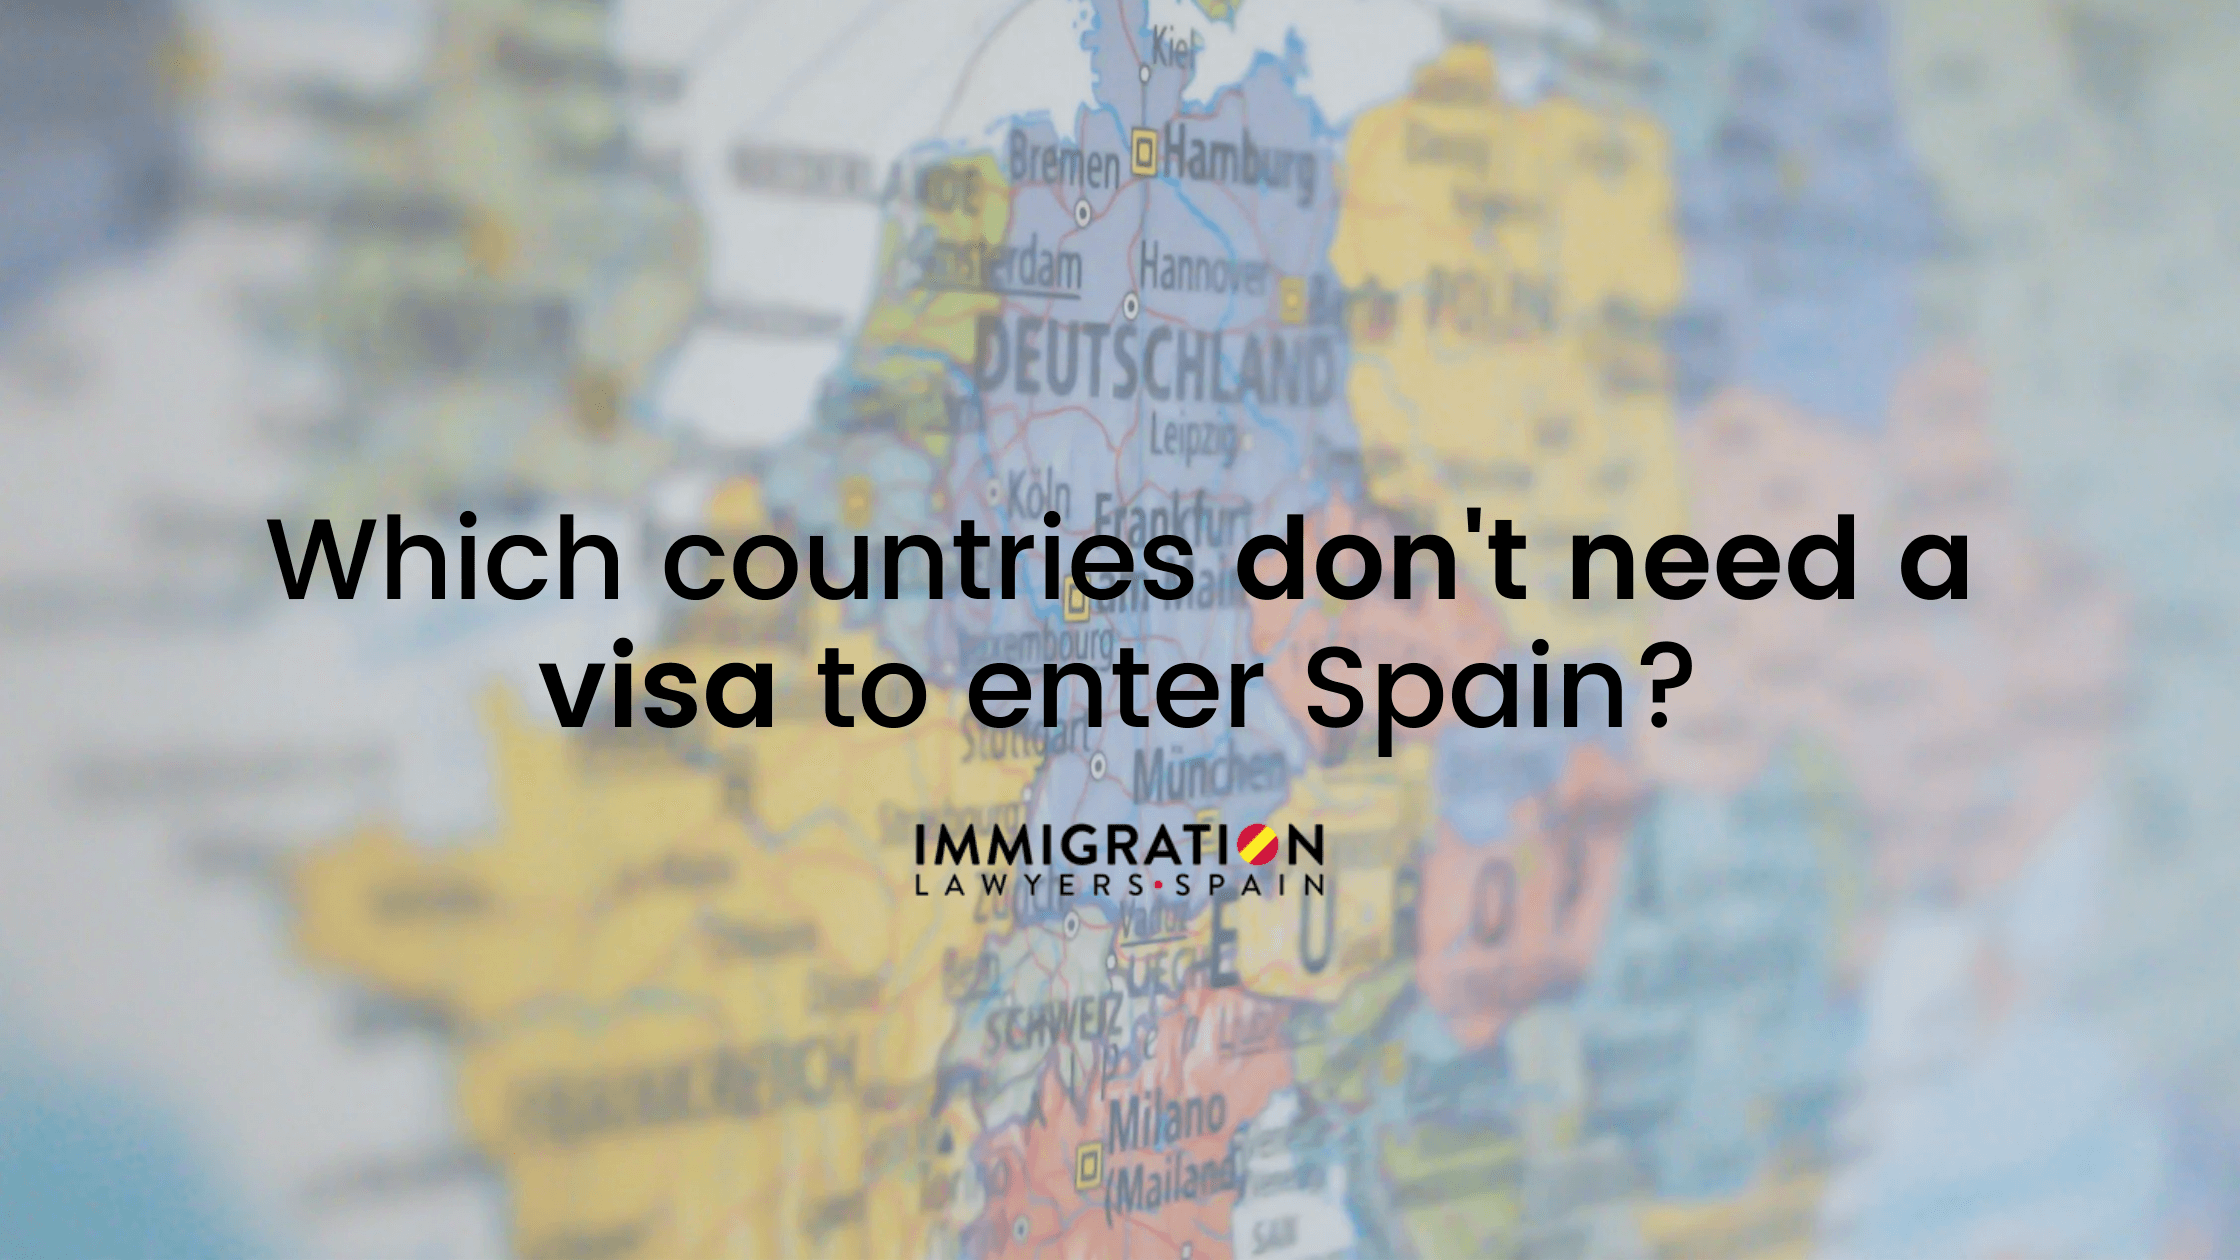 countries that don't need a visa to enter Spain